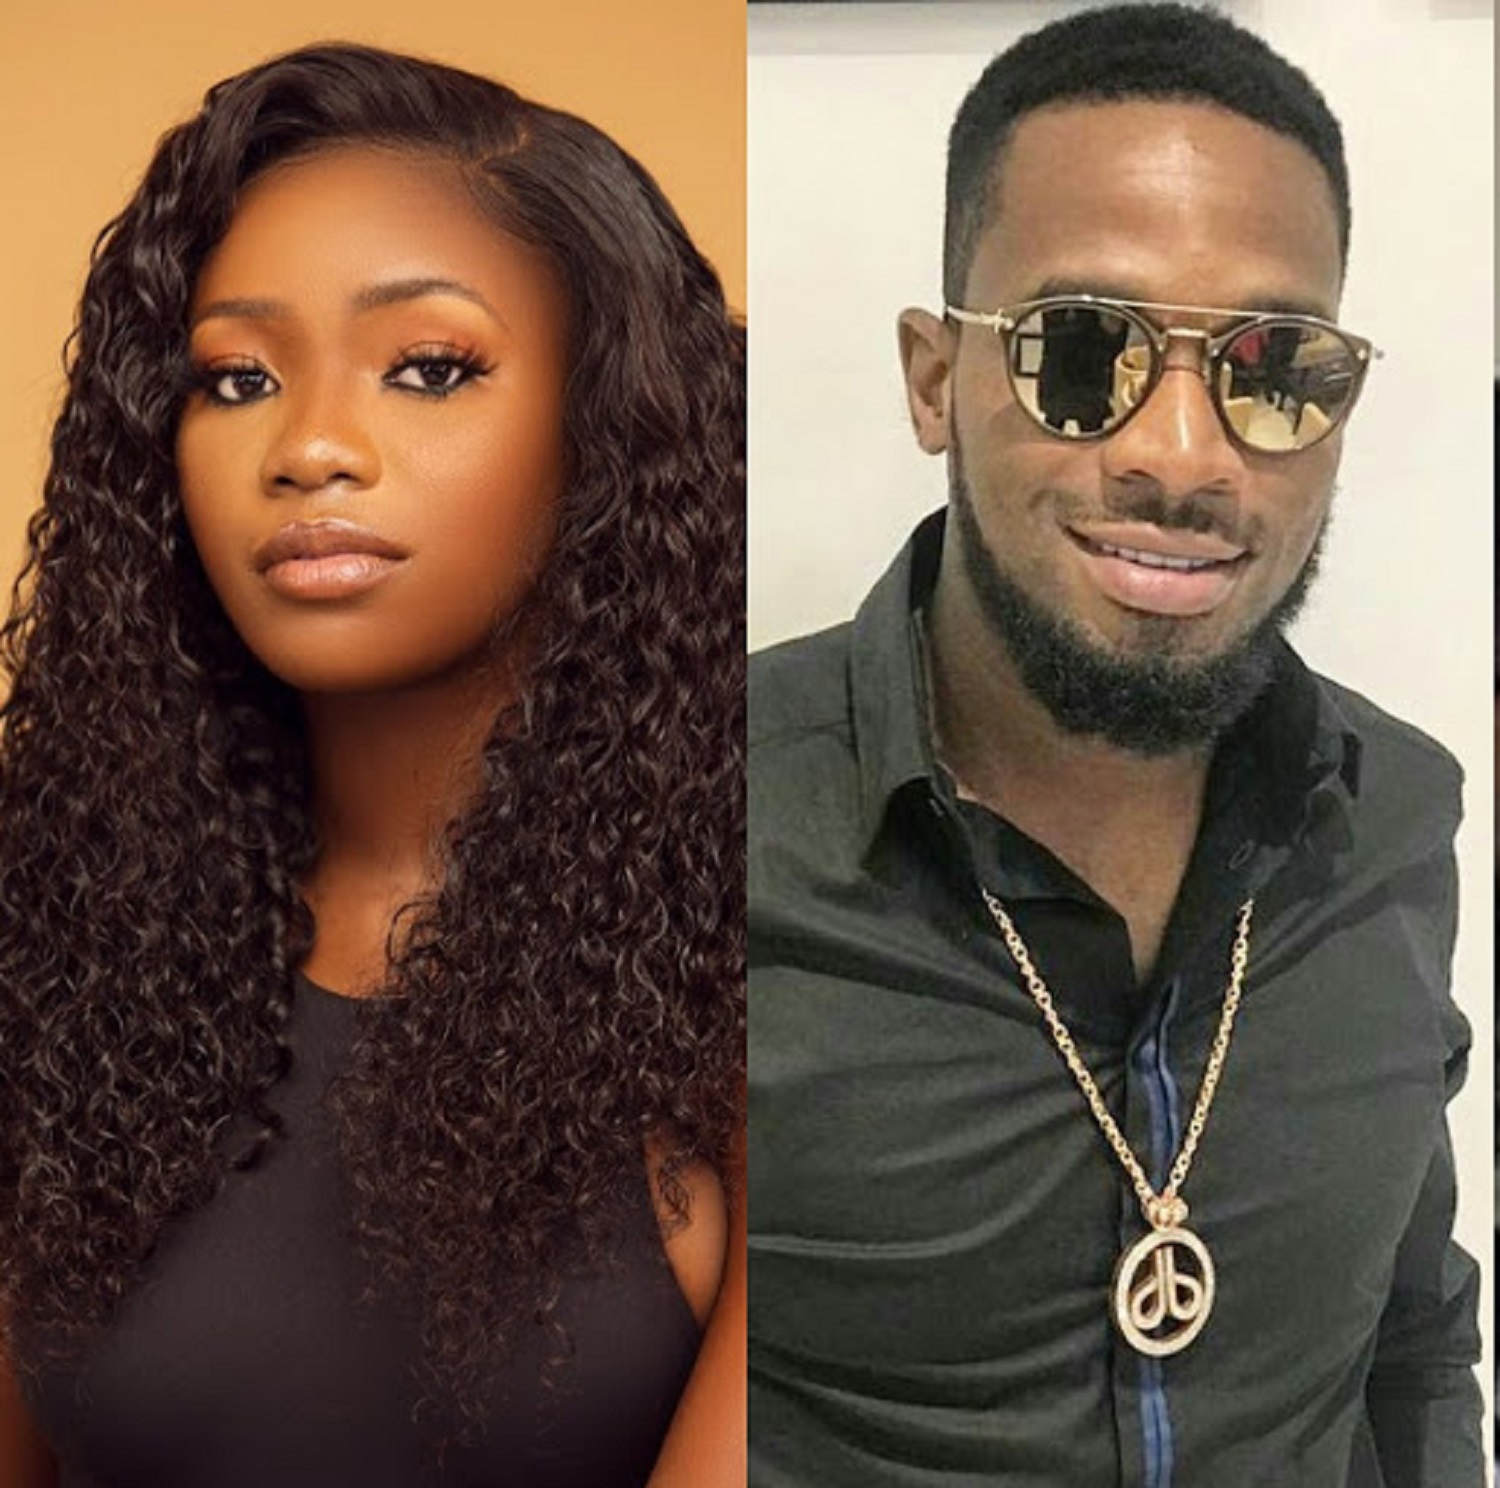 D'Banj I know would never associate with rapist or become one